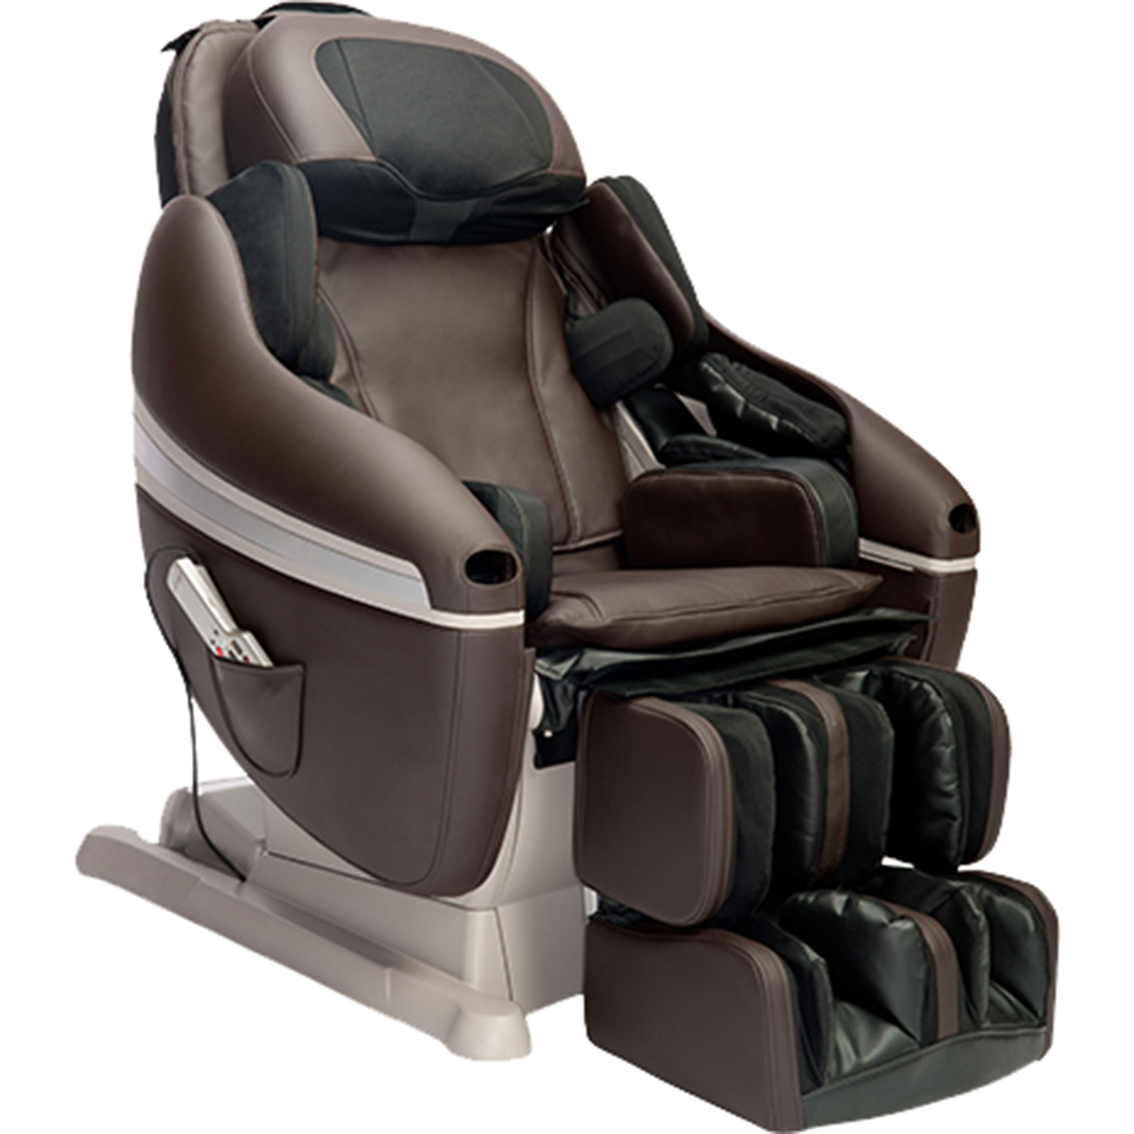 Inada Dreamwave Massage Chair Inada Sogno Dreamwave Massage Chair Brown Chairs